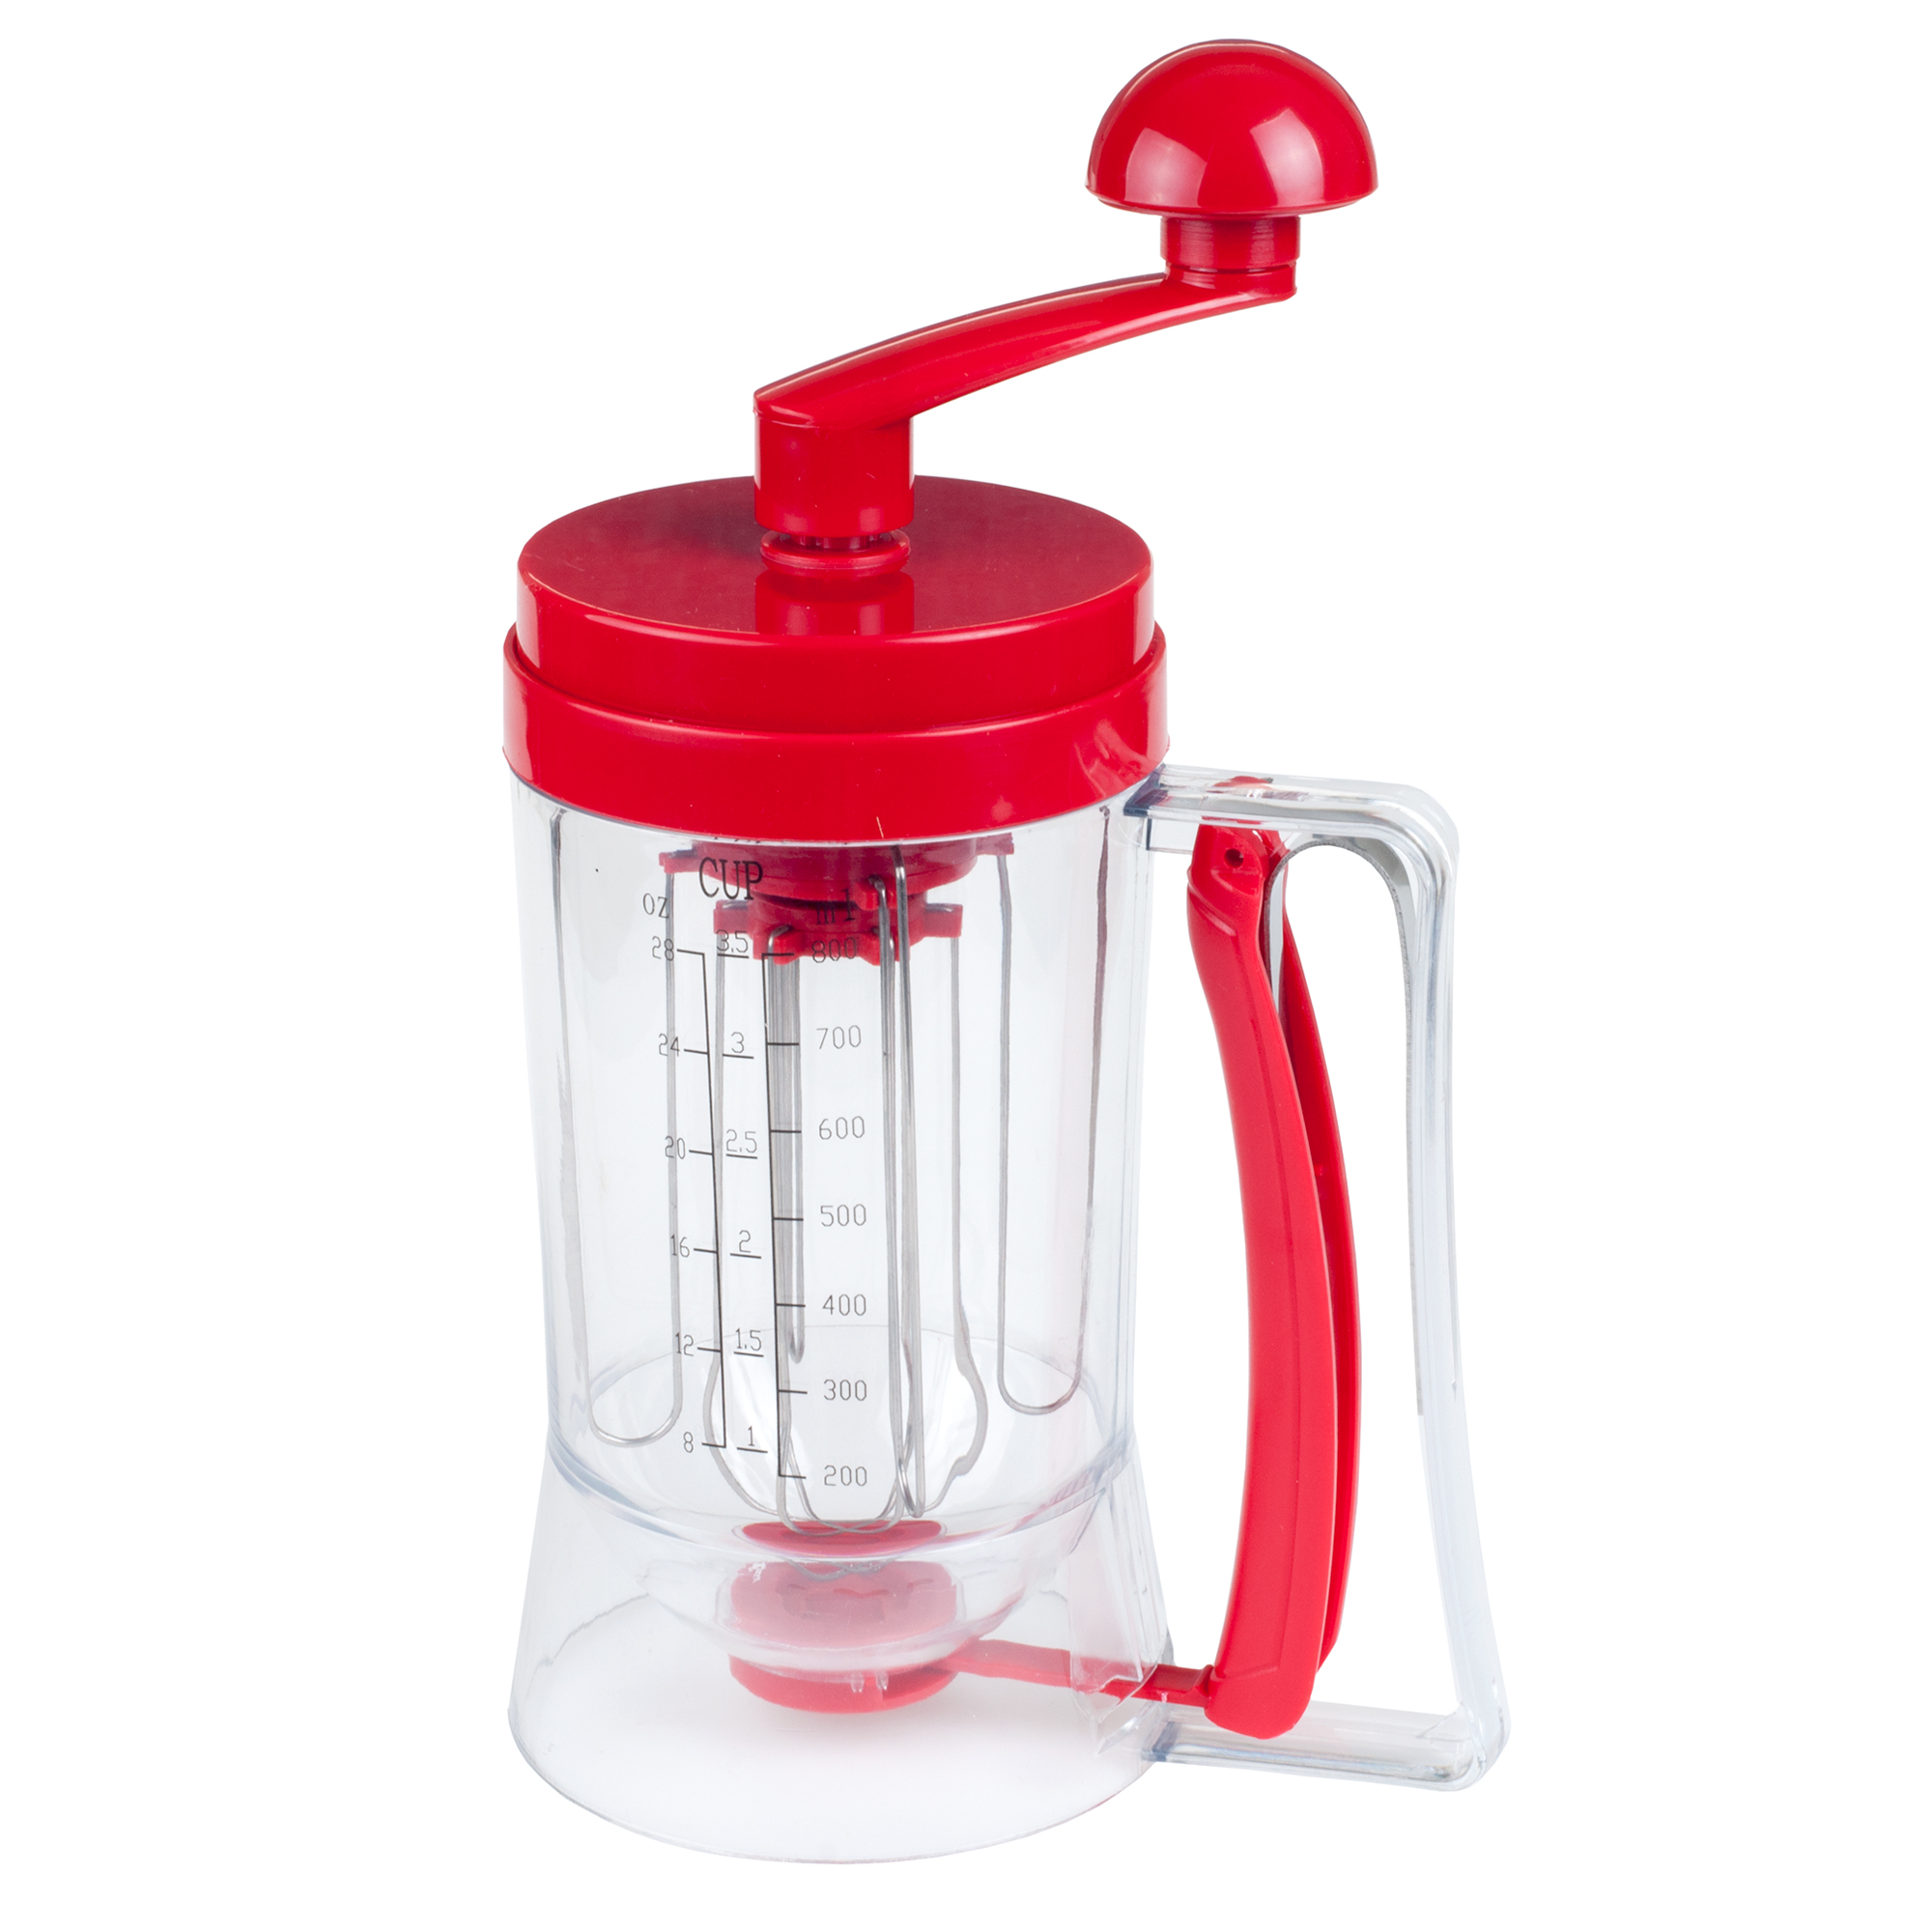 Batter Dispenser and Mixing System 28 ounce capacity by Chef Buddy